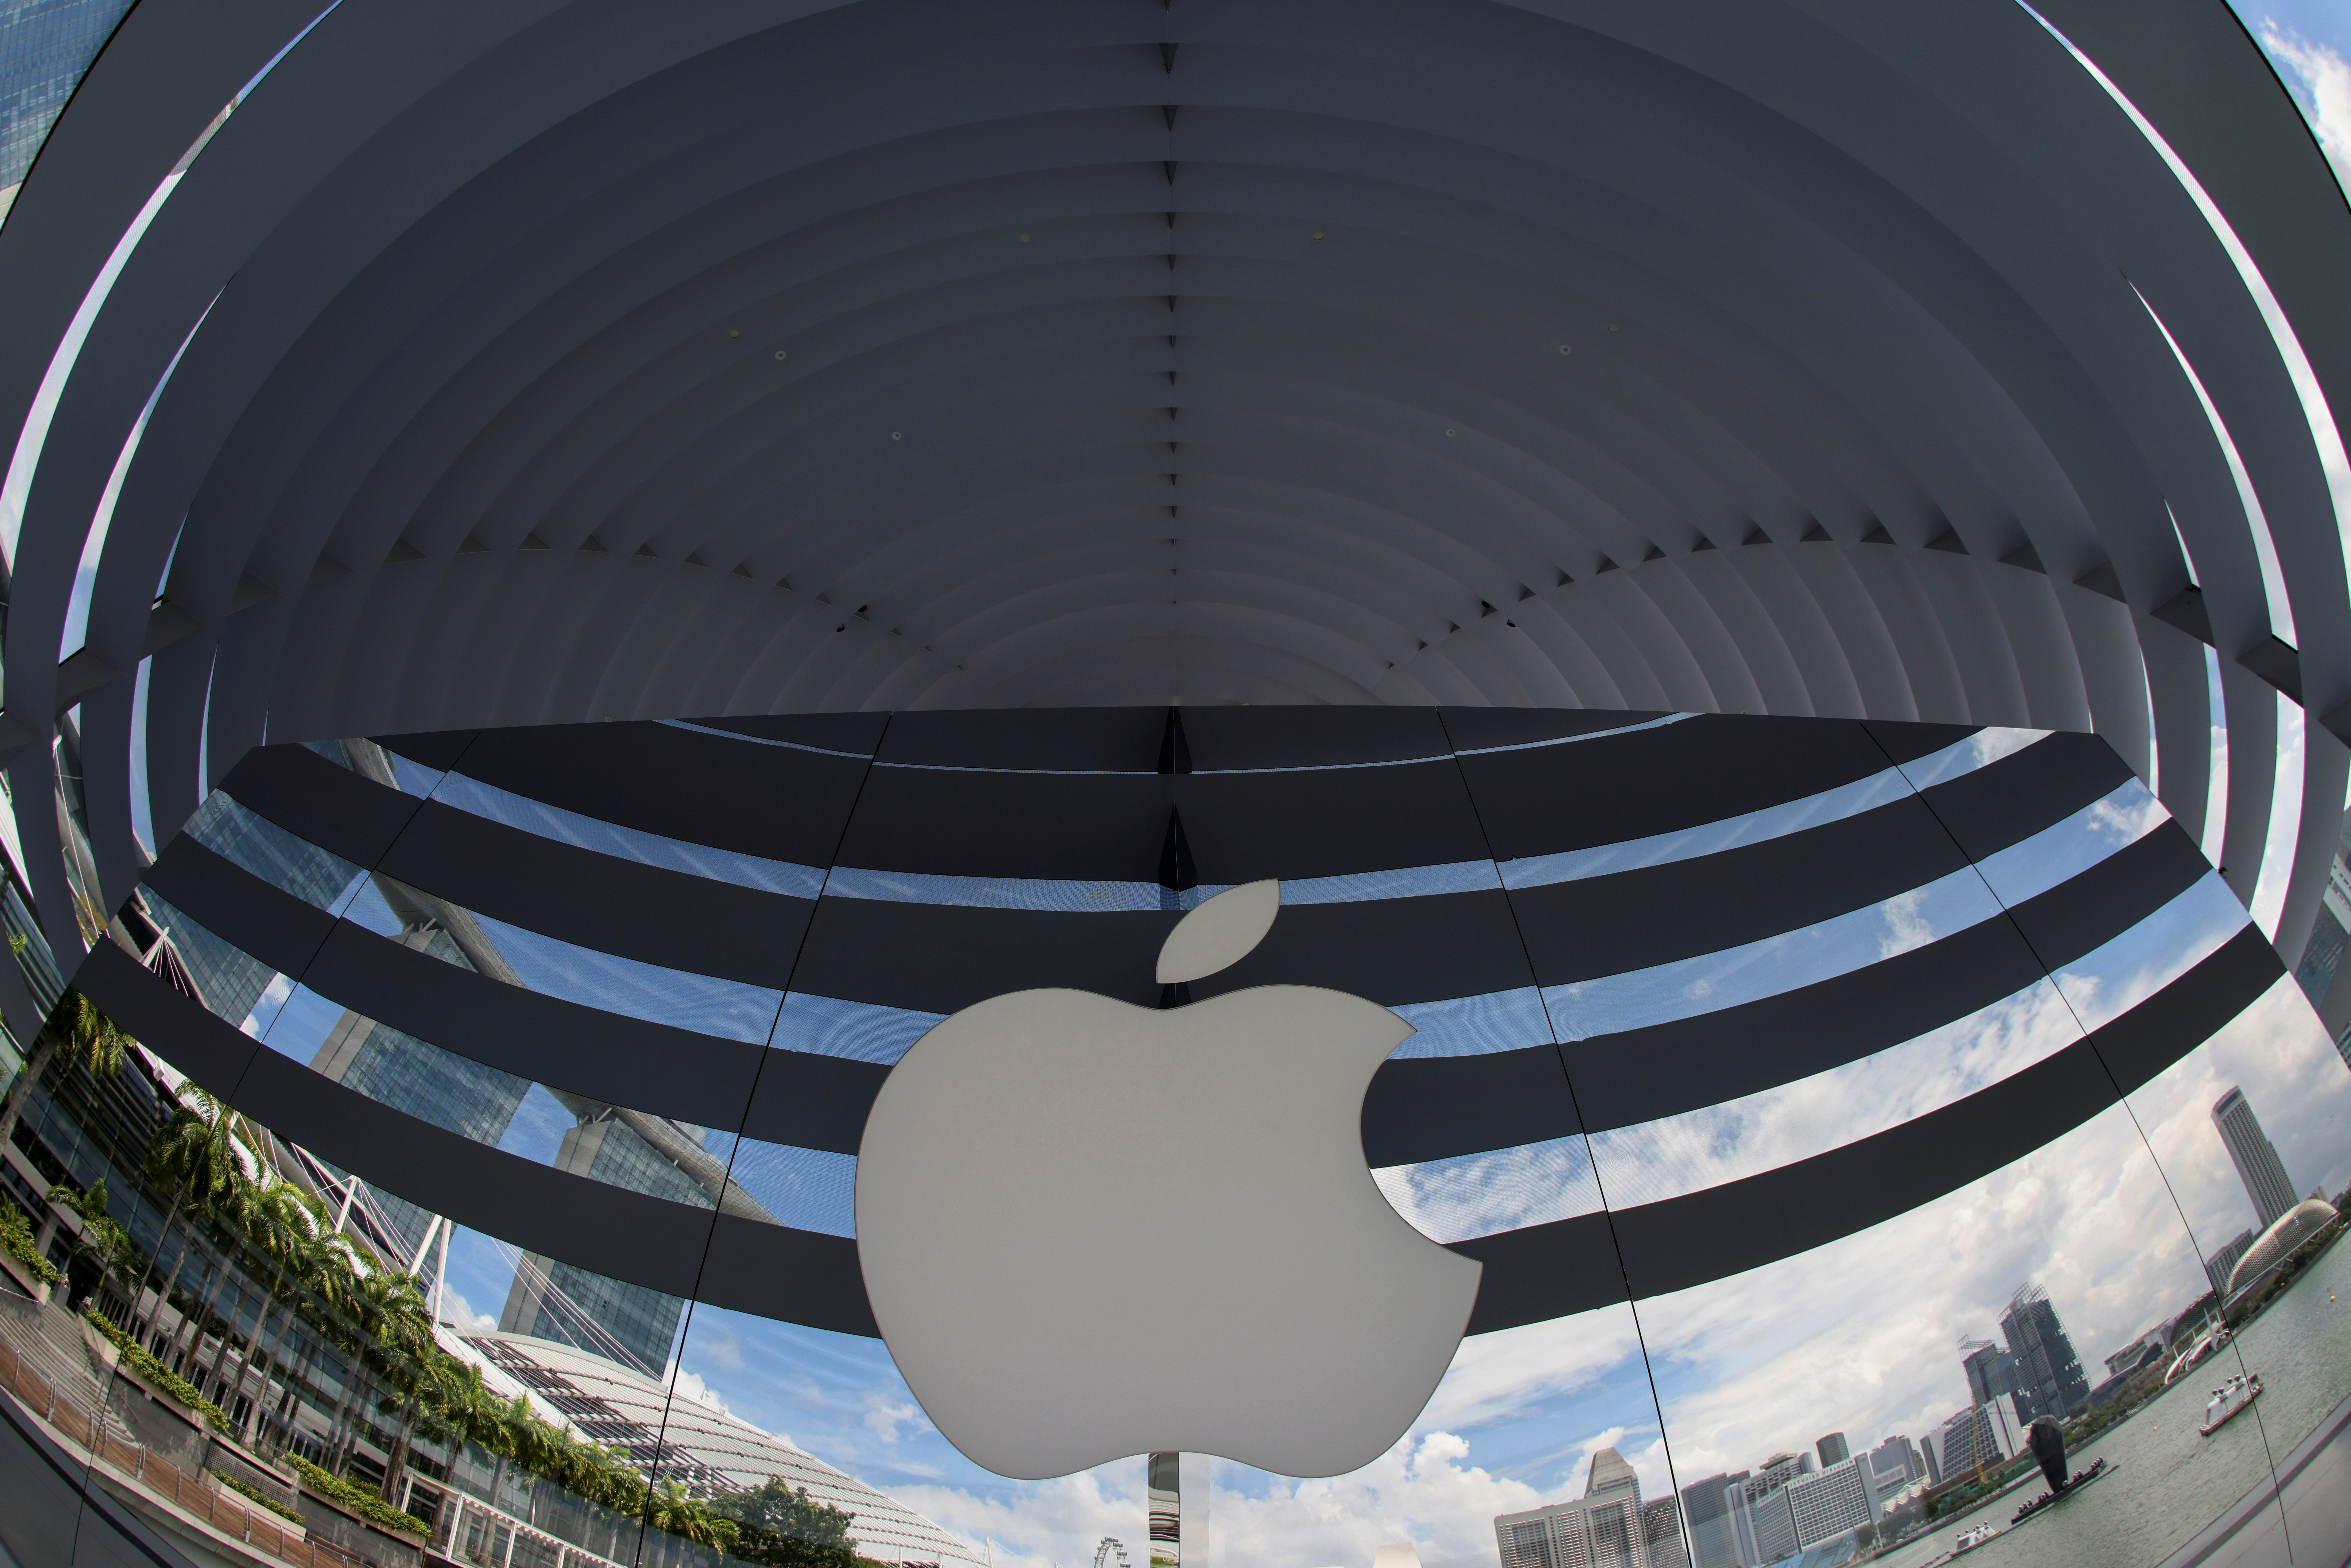 A logo of Apple is seen outside at the upcoming Apple Marina Bay Sands store in Singapore, September 8, 2020. REUTERS/Edgar Su/Files